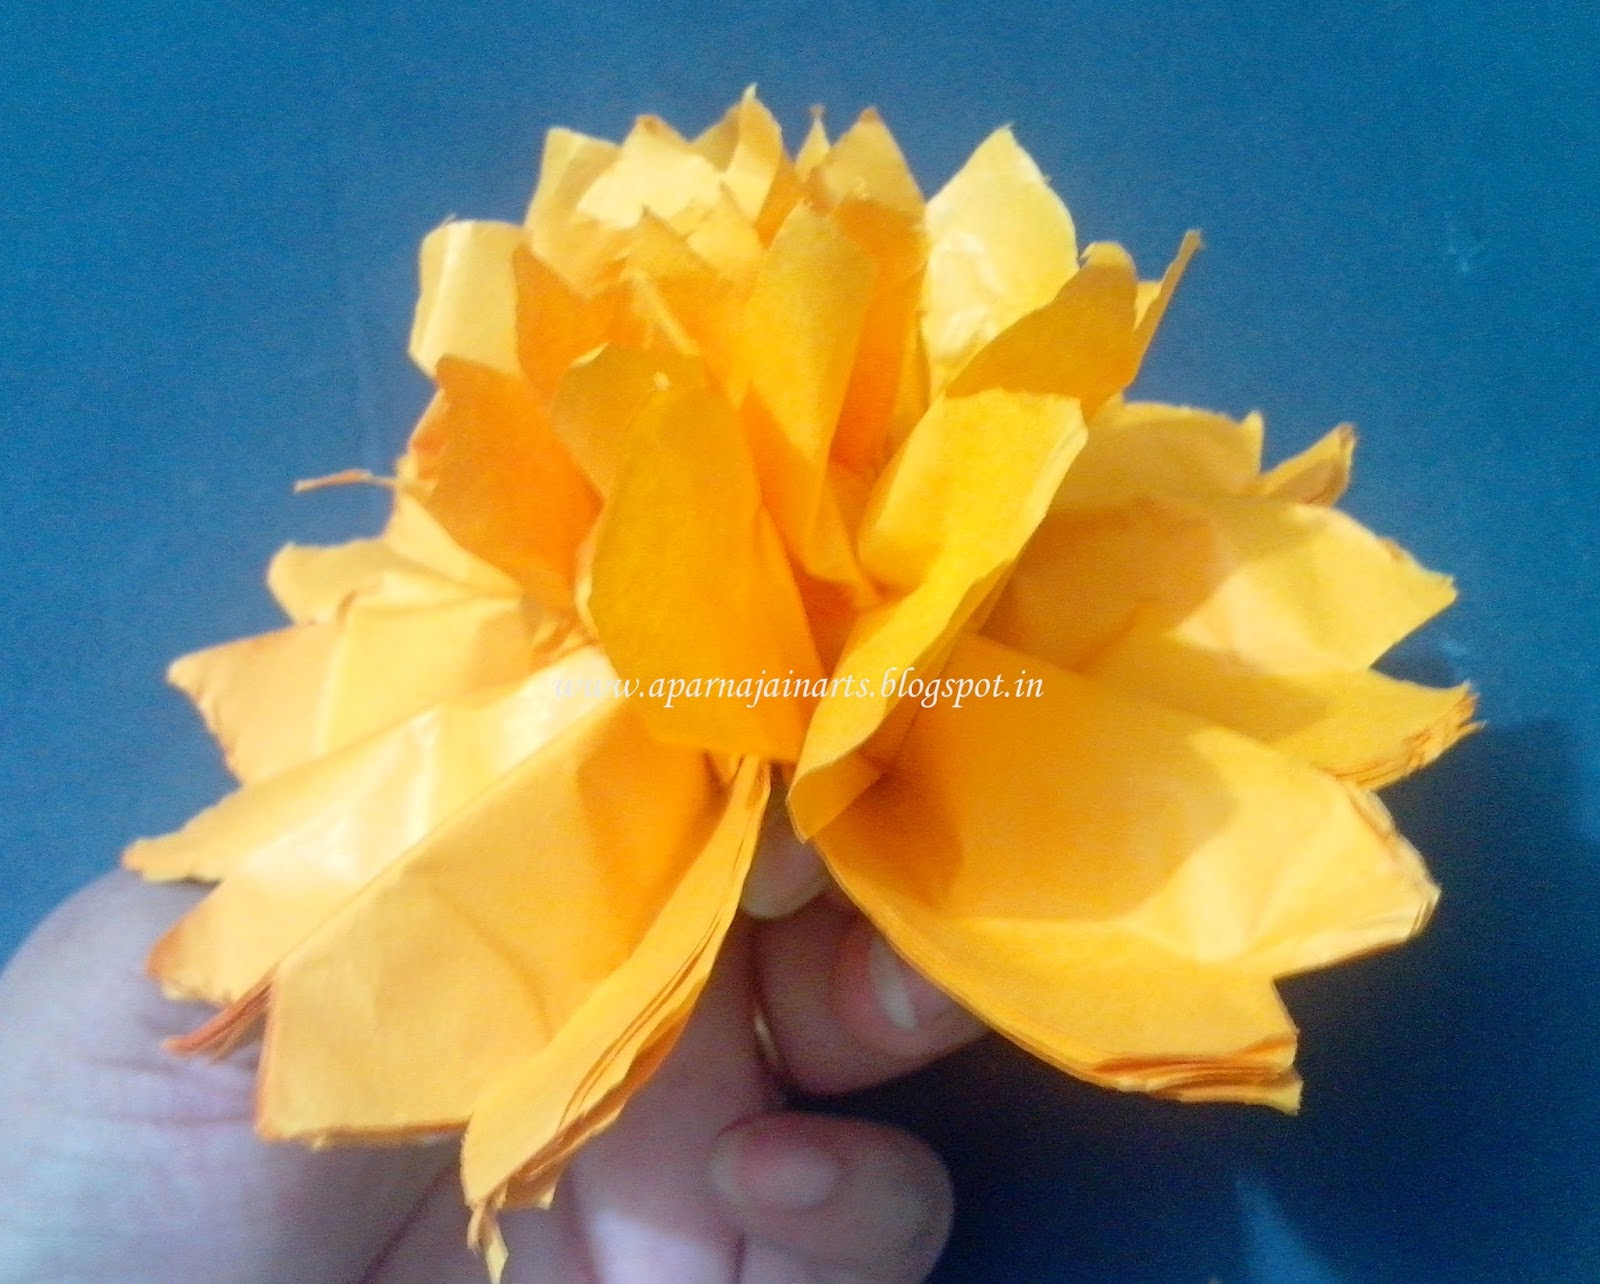 The crafty world pankh arts pom pom tissuekite paper flowers your tissuekite paper flowers are ready use them to decorate you home creatively and do share with me by adding the pictures in the comments box below mightylinksfo